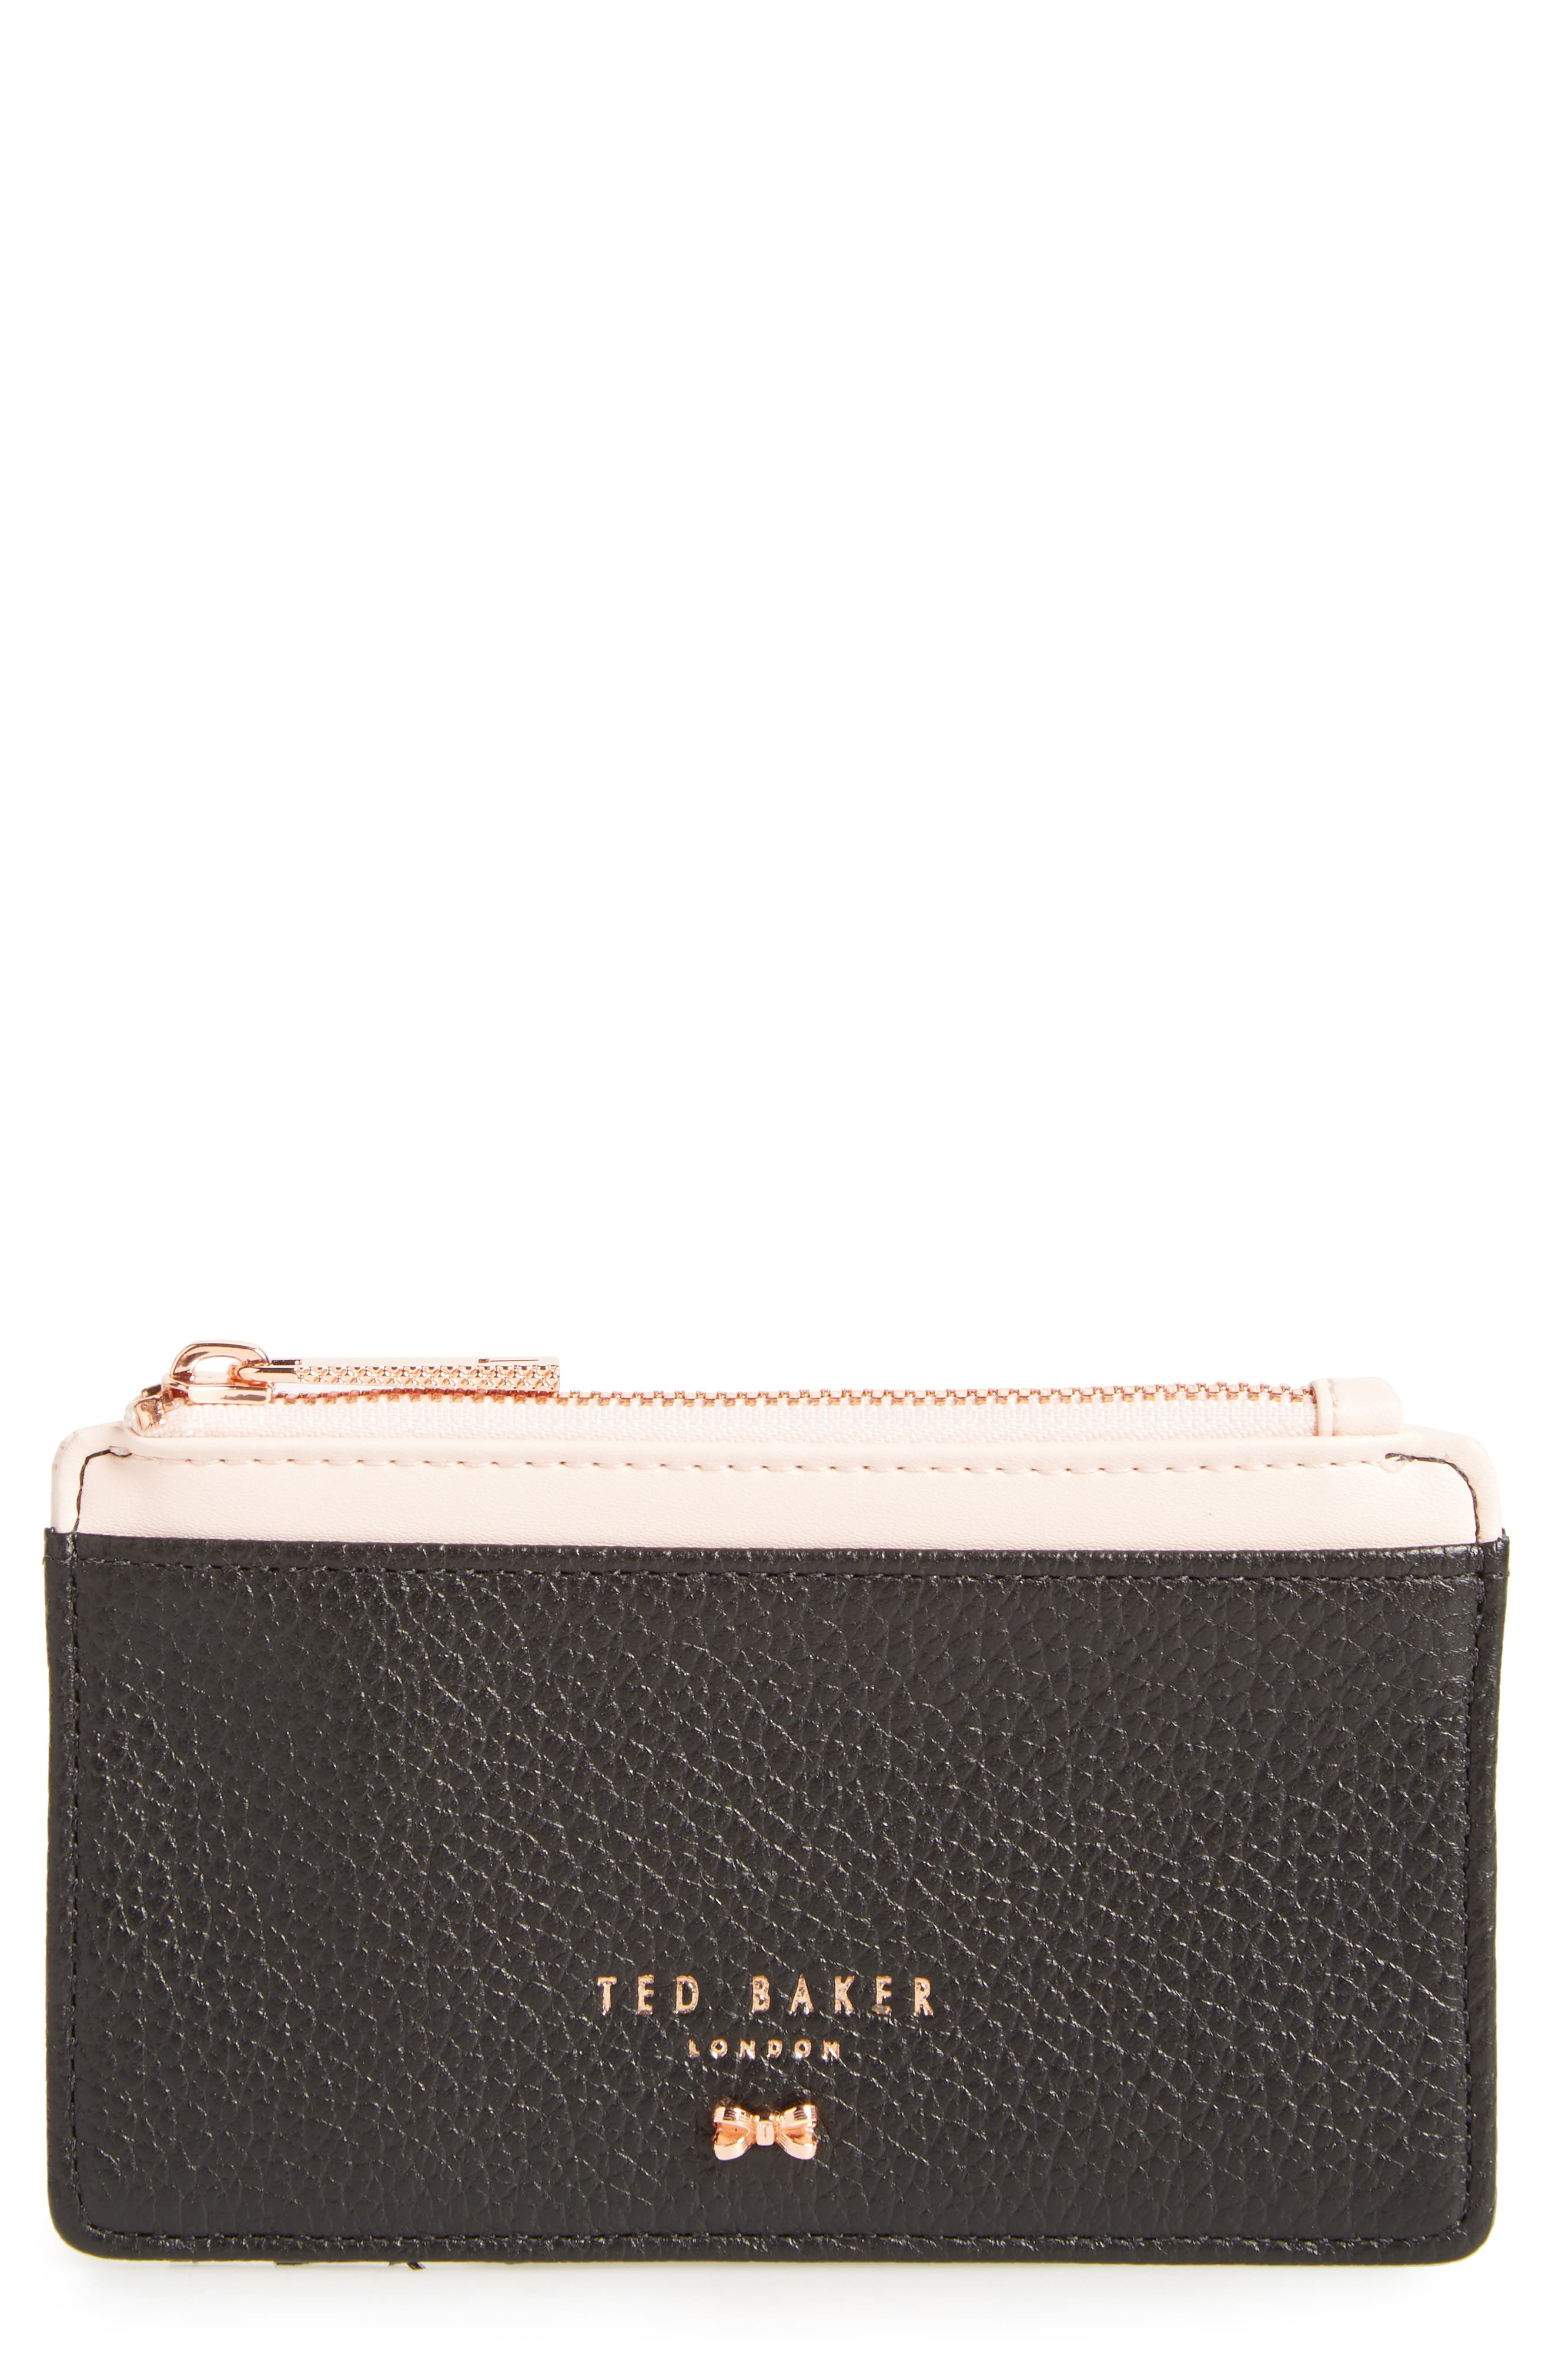 Ted Baker London Alica Top Zip Leather Card Case